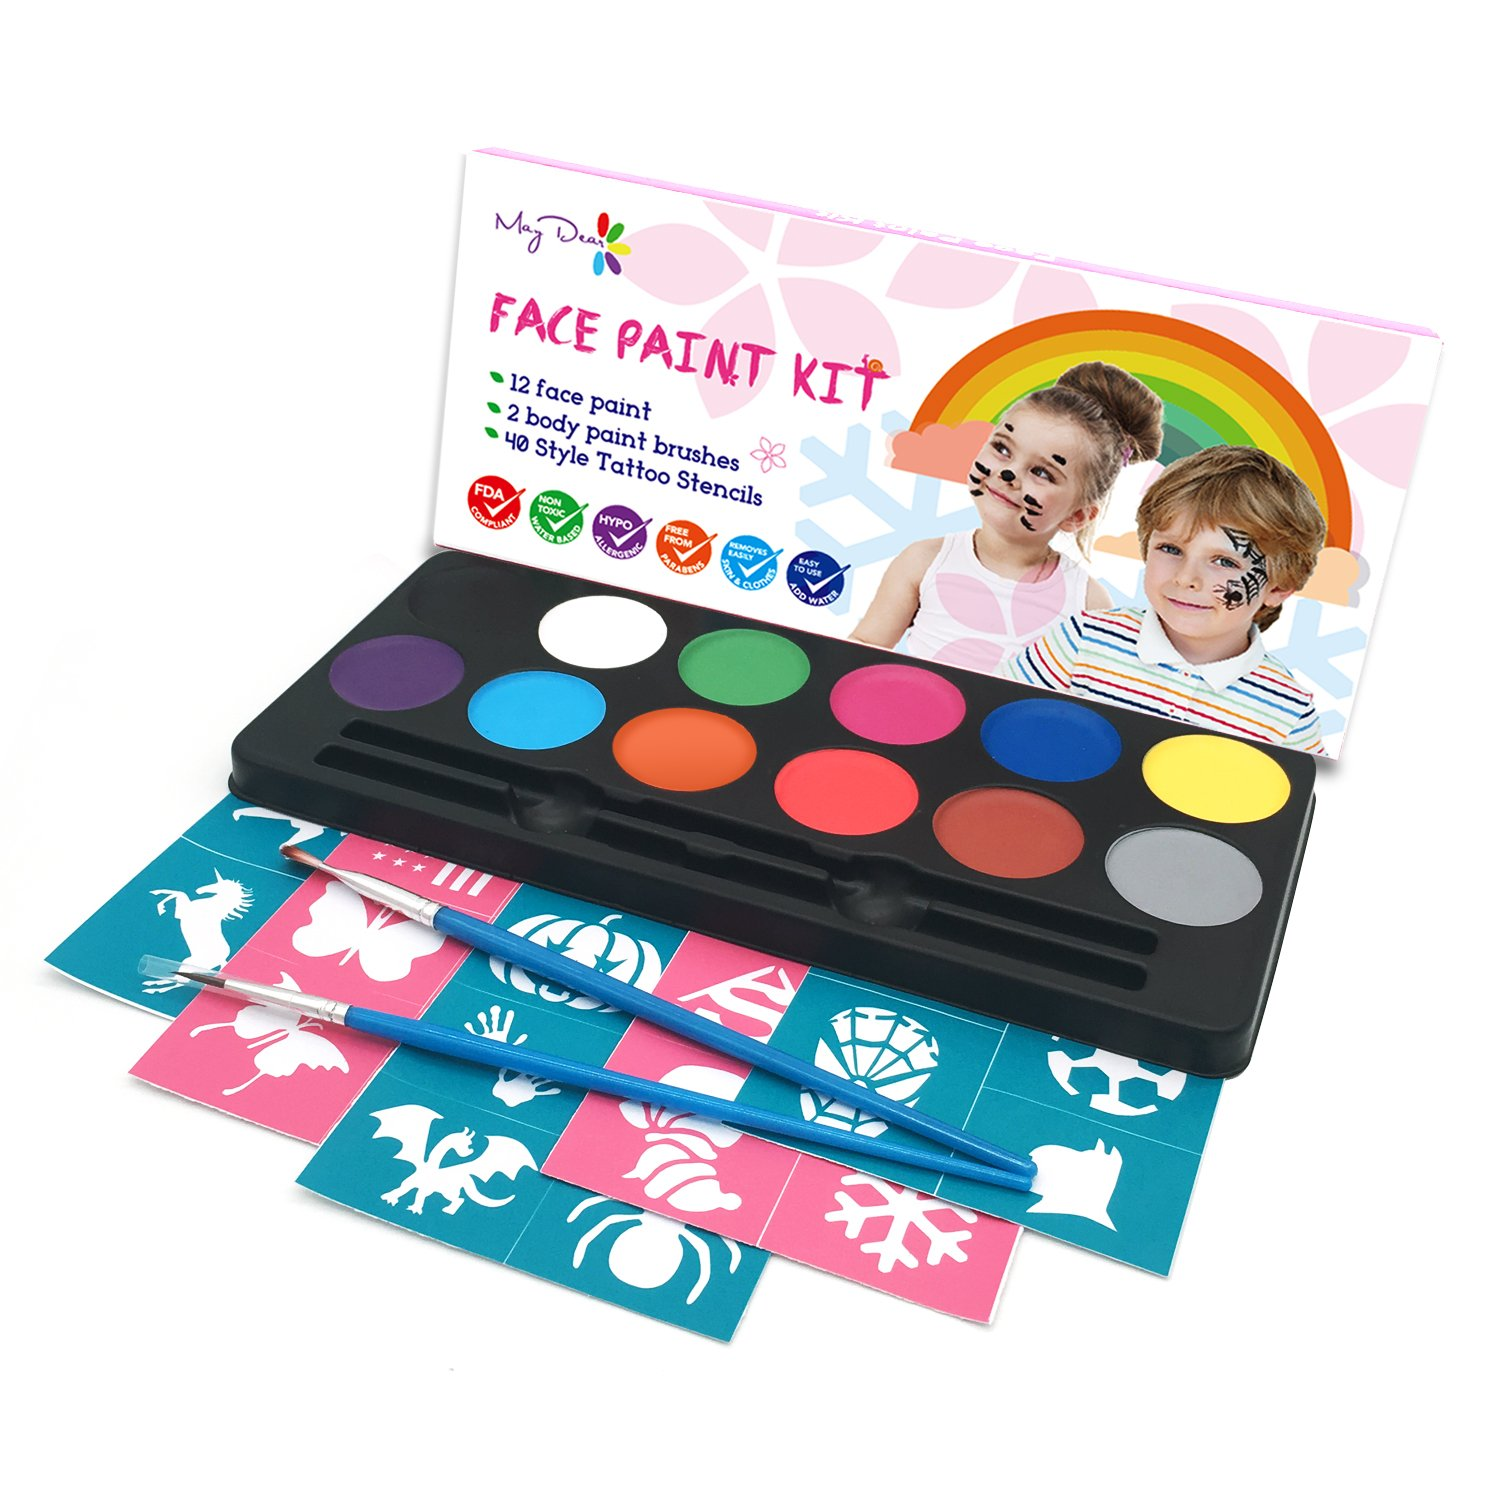 Maydear Face Paint Kit for Kids with Safe and None Toxic FDA Compliant Water Based 12 Color Palette Body Paint with 40 Stencils and 2 Brushes